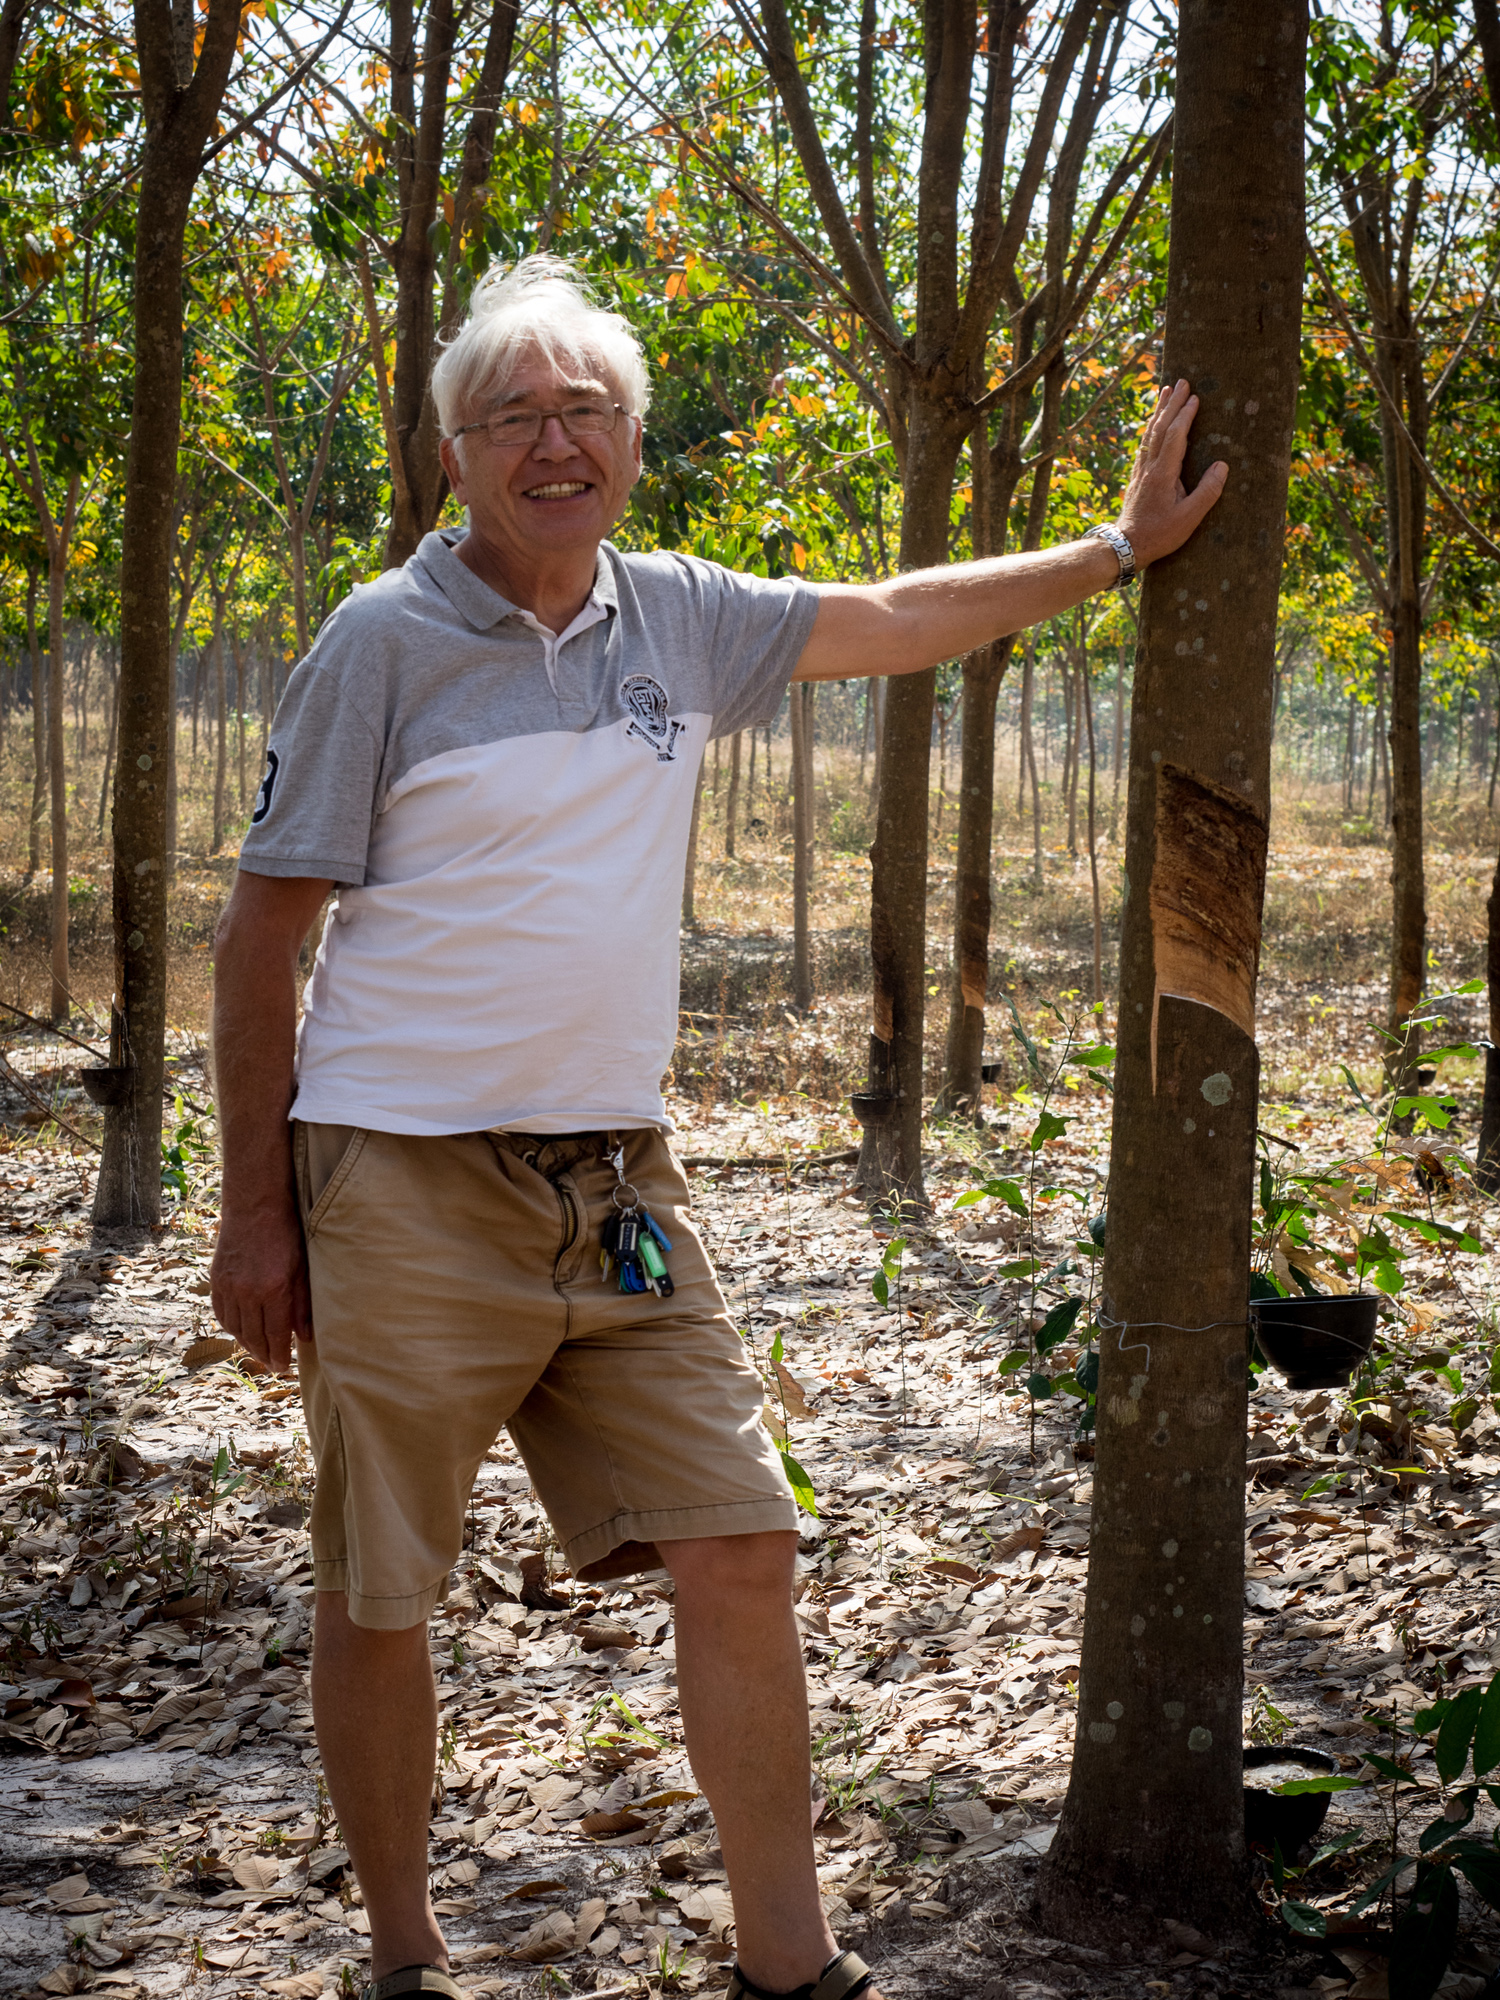 Jeremy in a rubber plantation